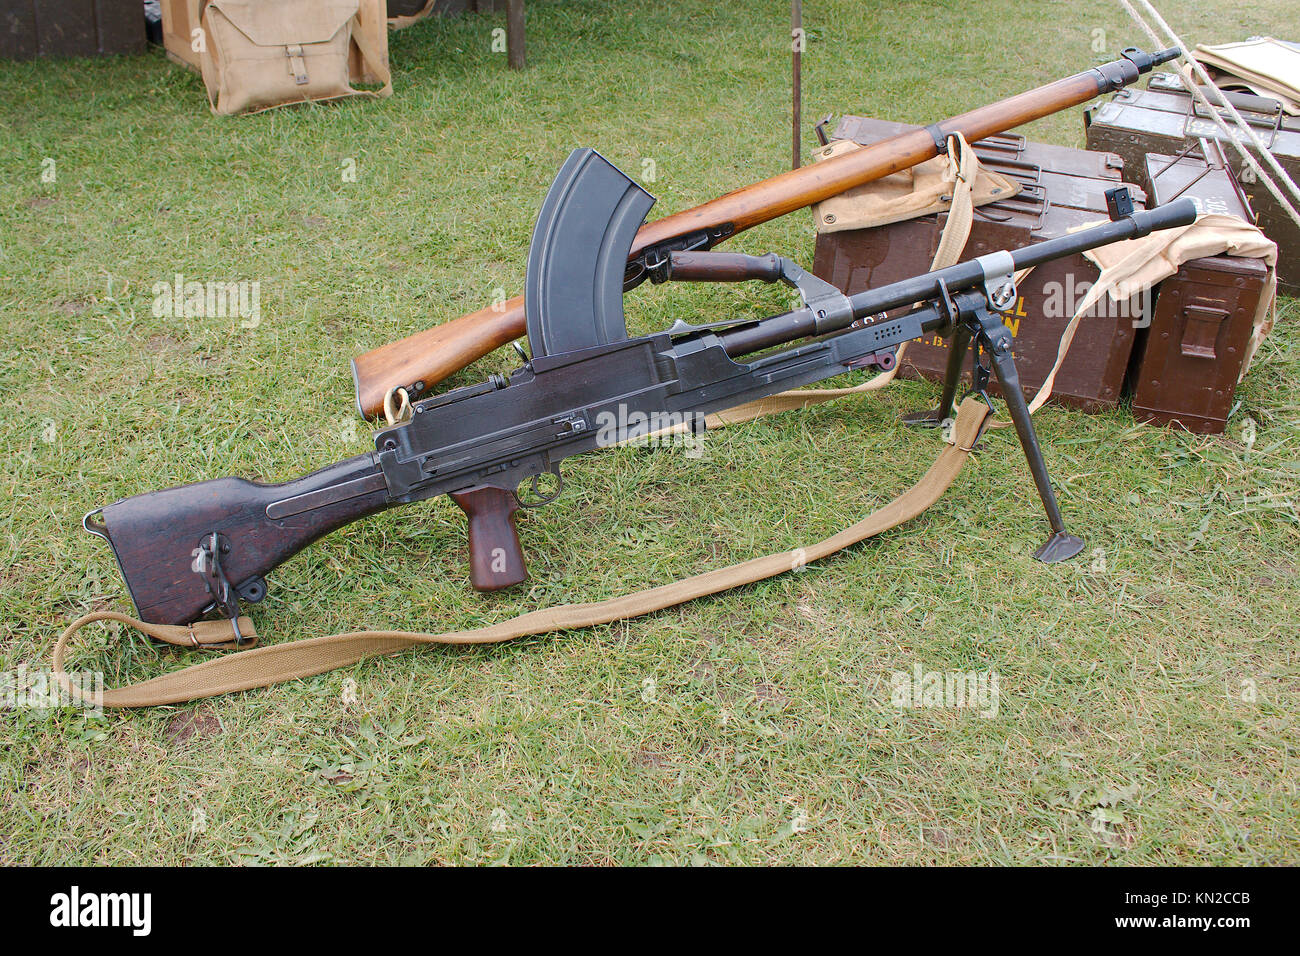 World war 2 era historical British army Bren light machine gun. - Stock Image